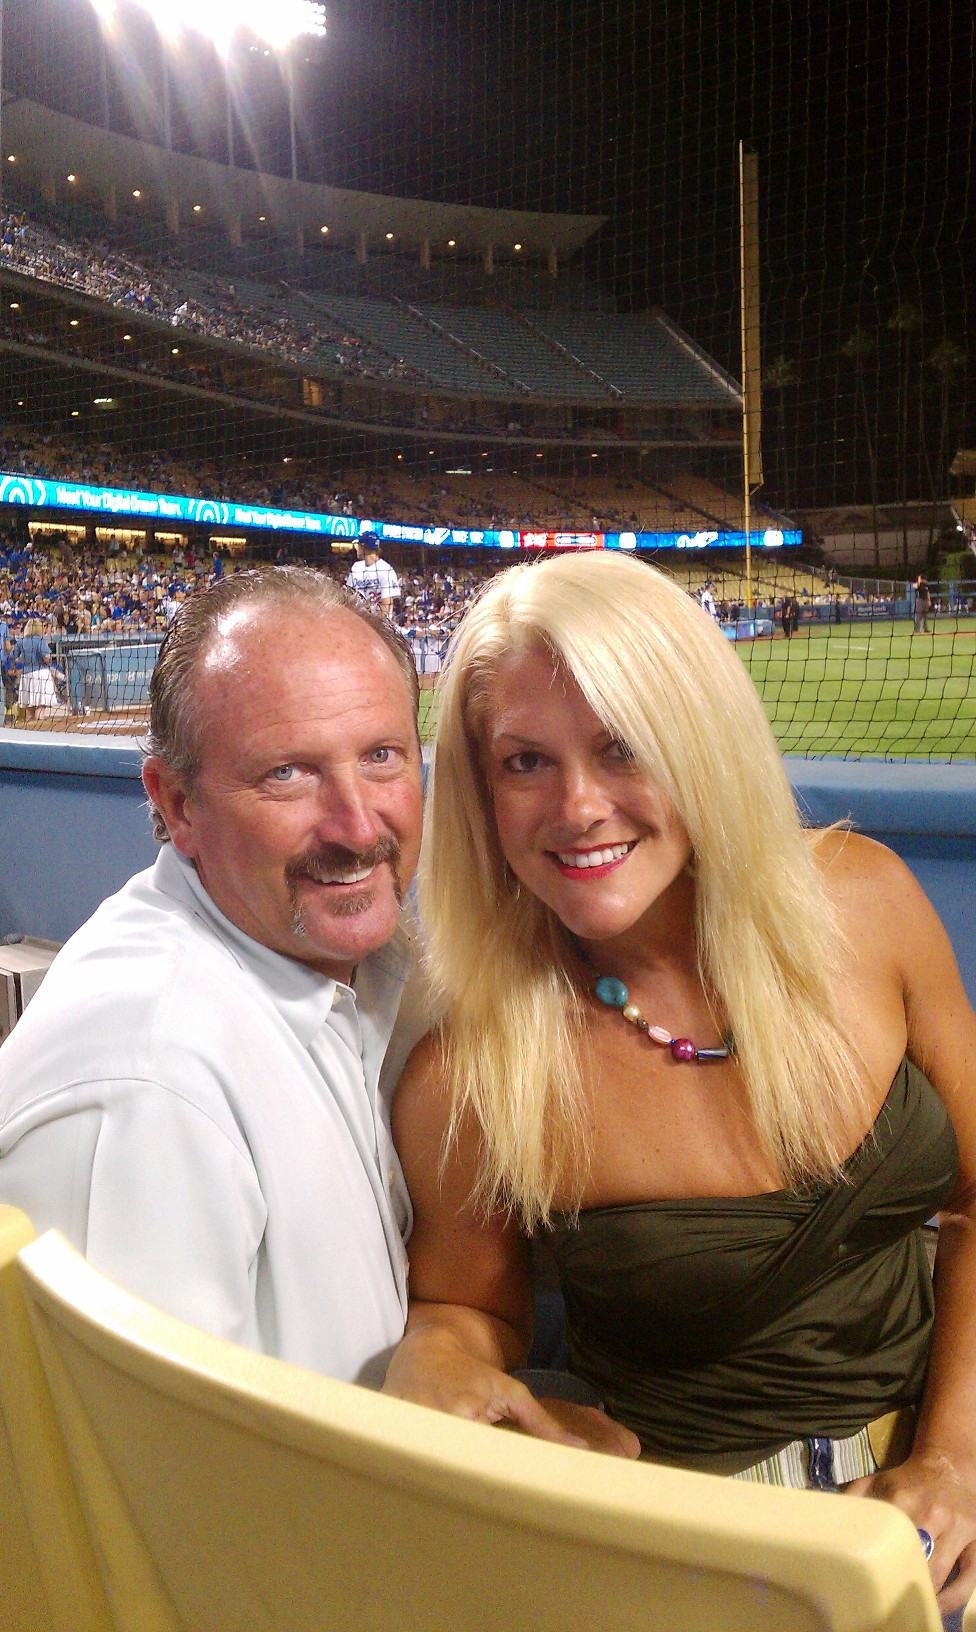 Phillies girl goes to her 1st dodgers game in style turn the payge